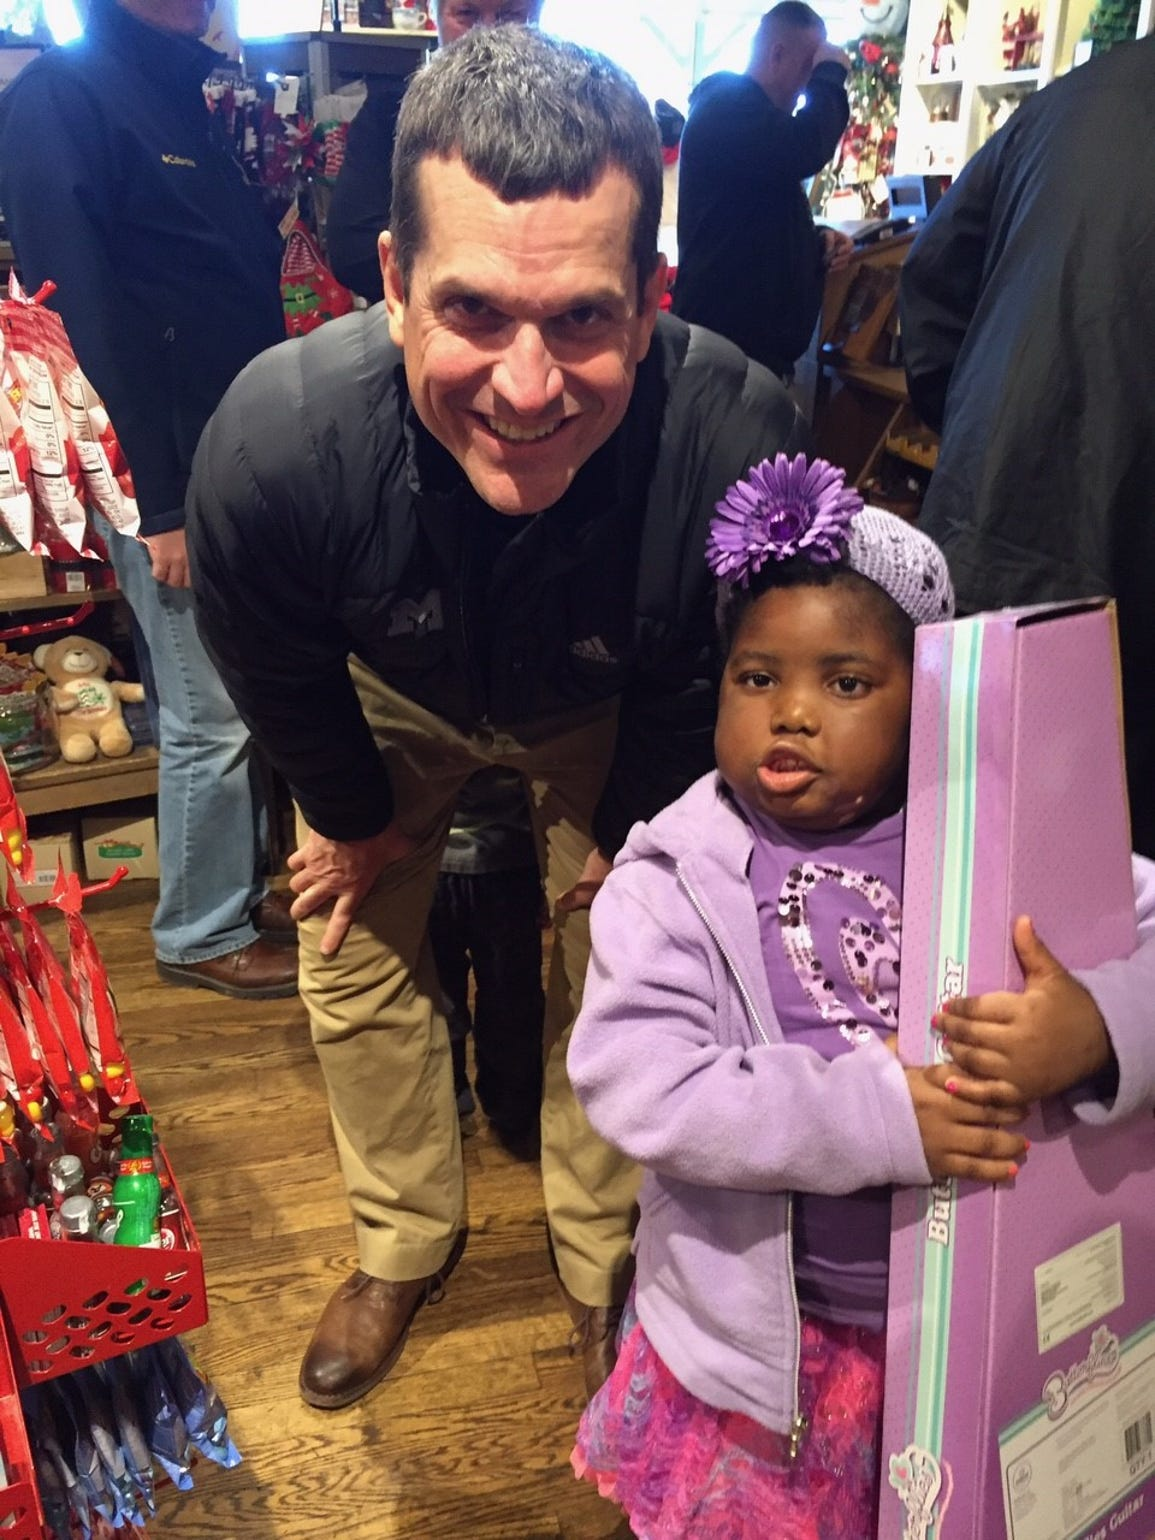 Chika meets Michigan football coach Jim Harbaugh in